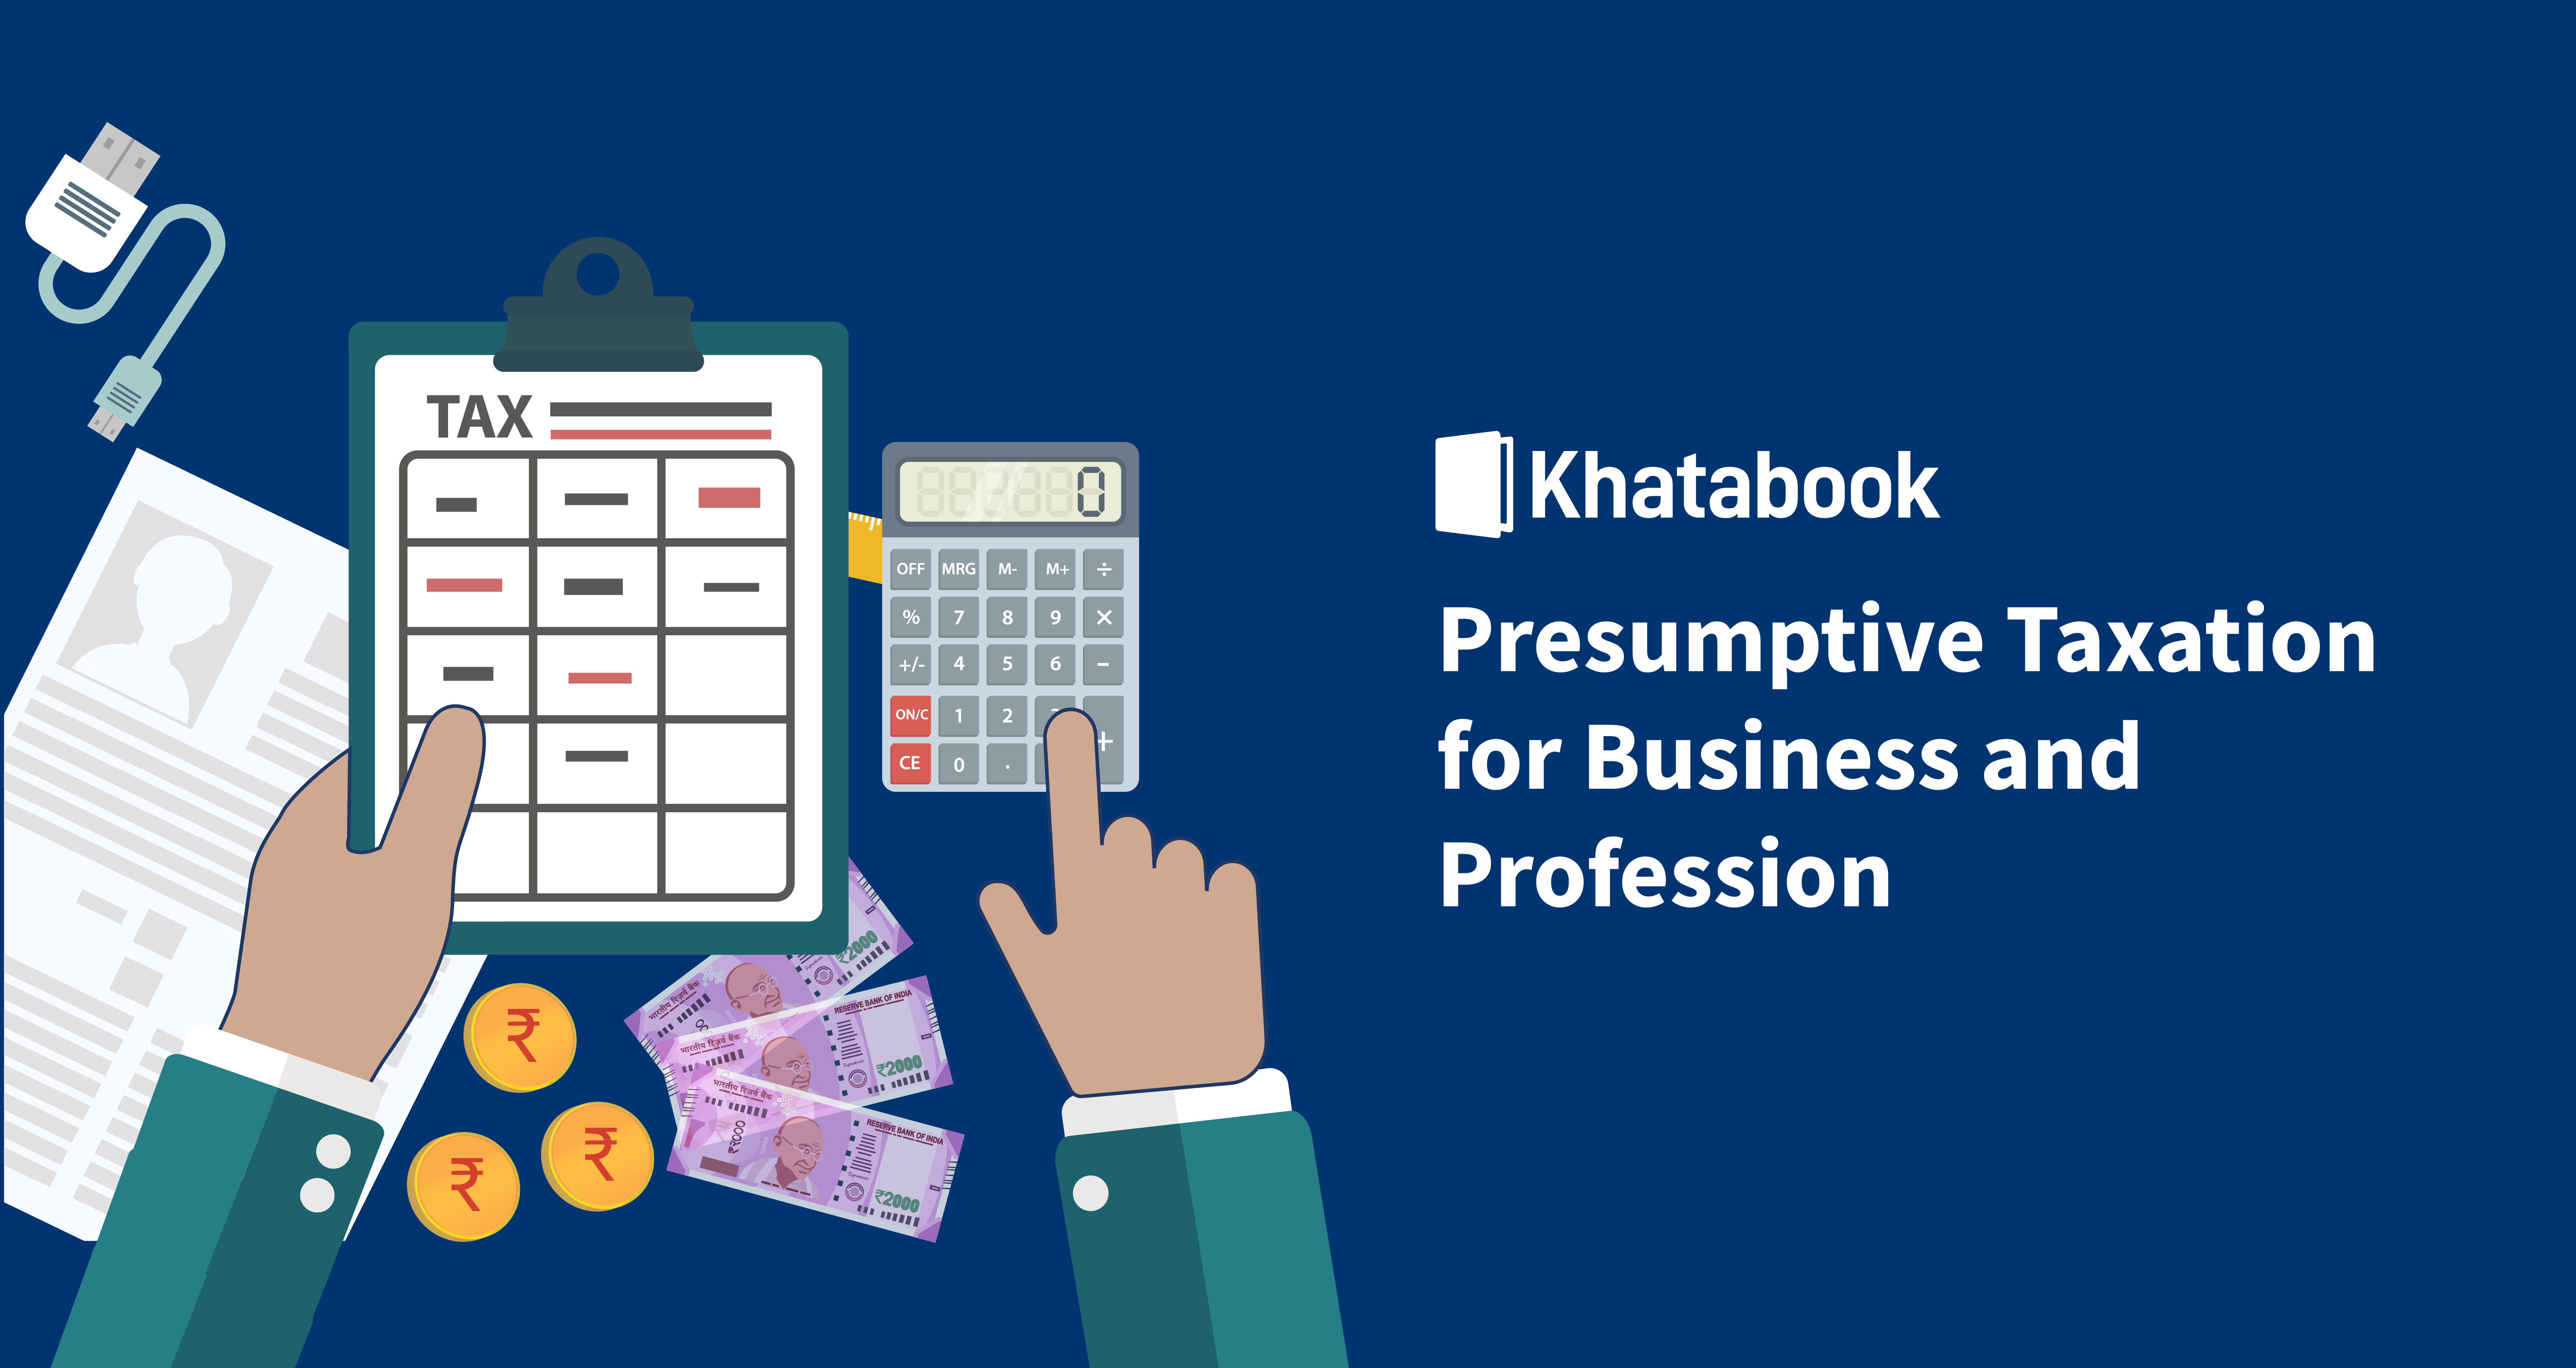 Presumptive Taxation for Business and Profession